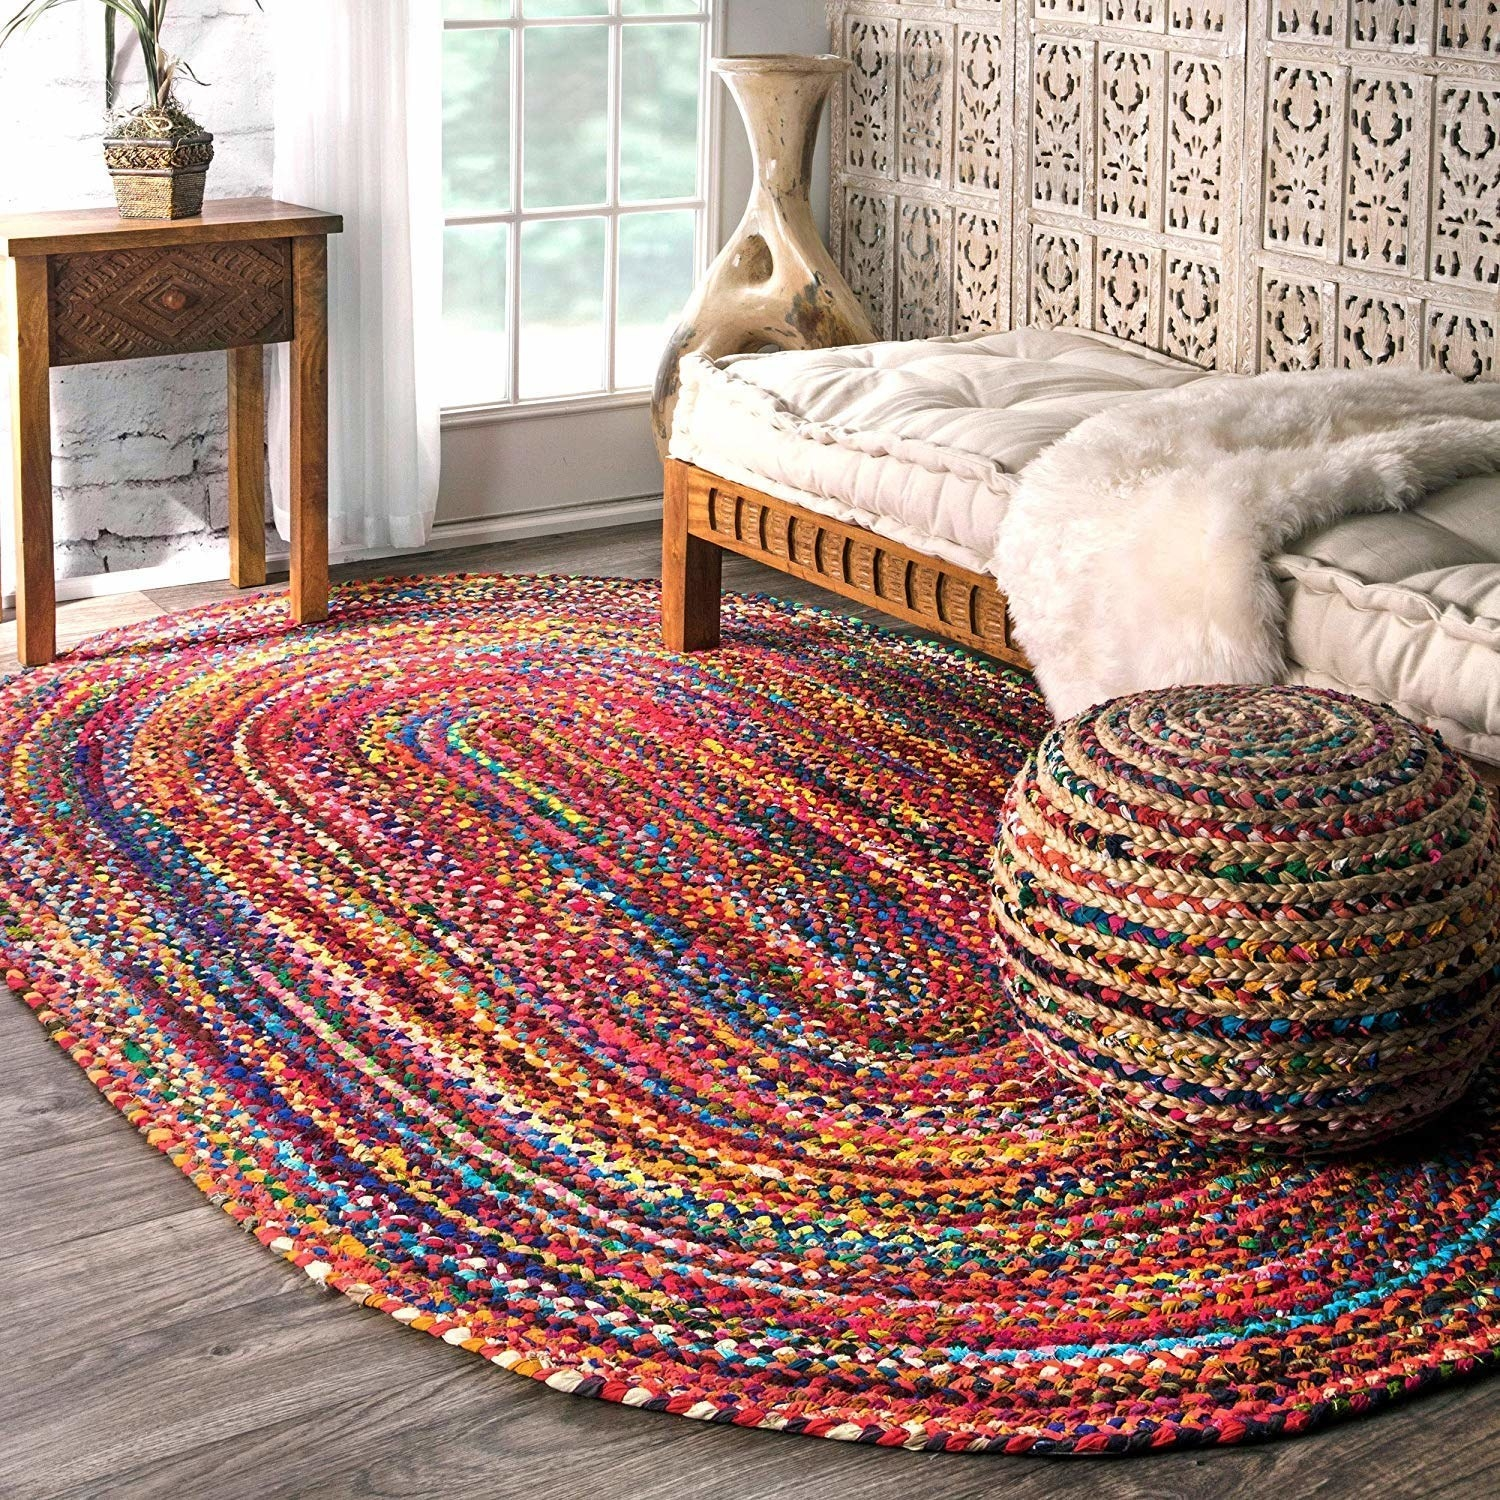 A colourful braided rug pictured in a room.